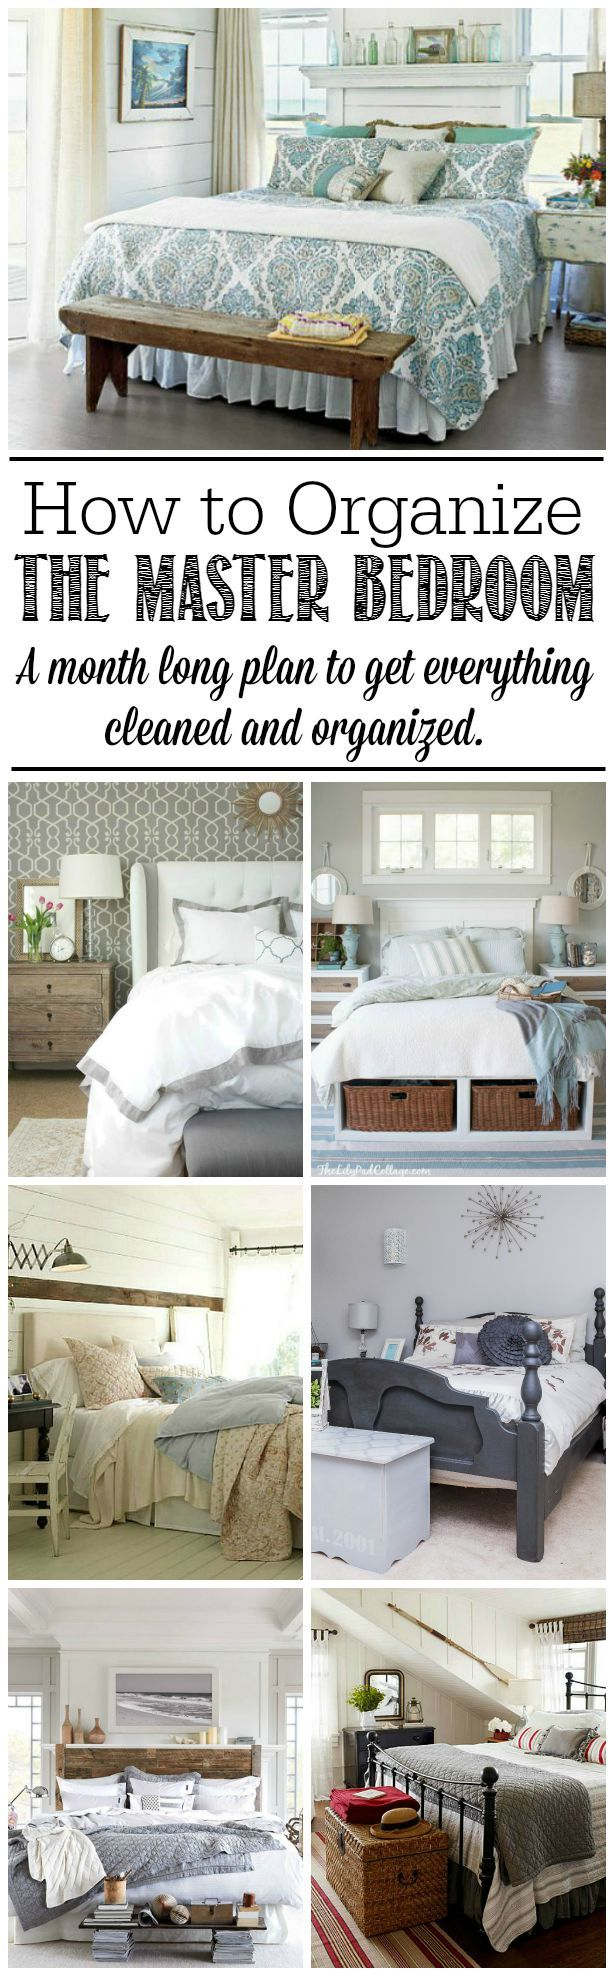 25 best ideas about bedroom cleaning on pinterest cleaning room room organization and moving How do you clean your bedroom